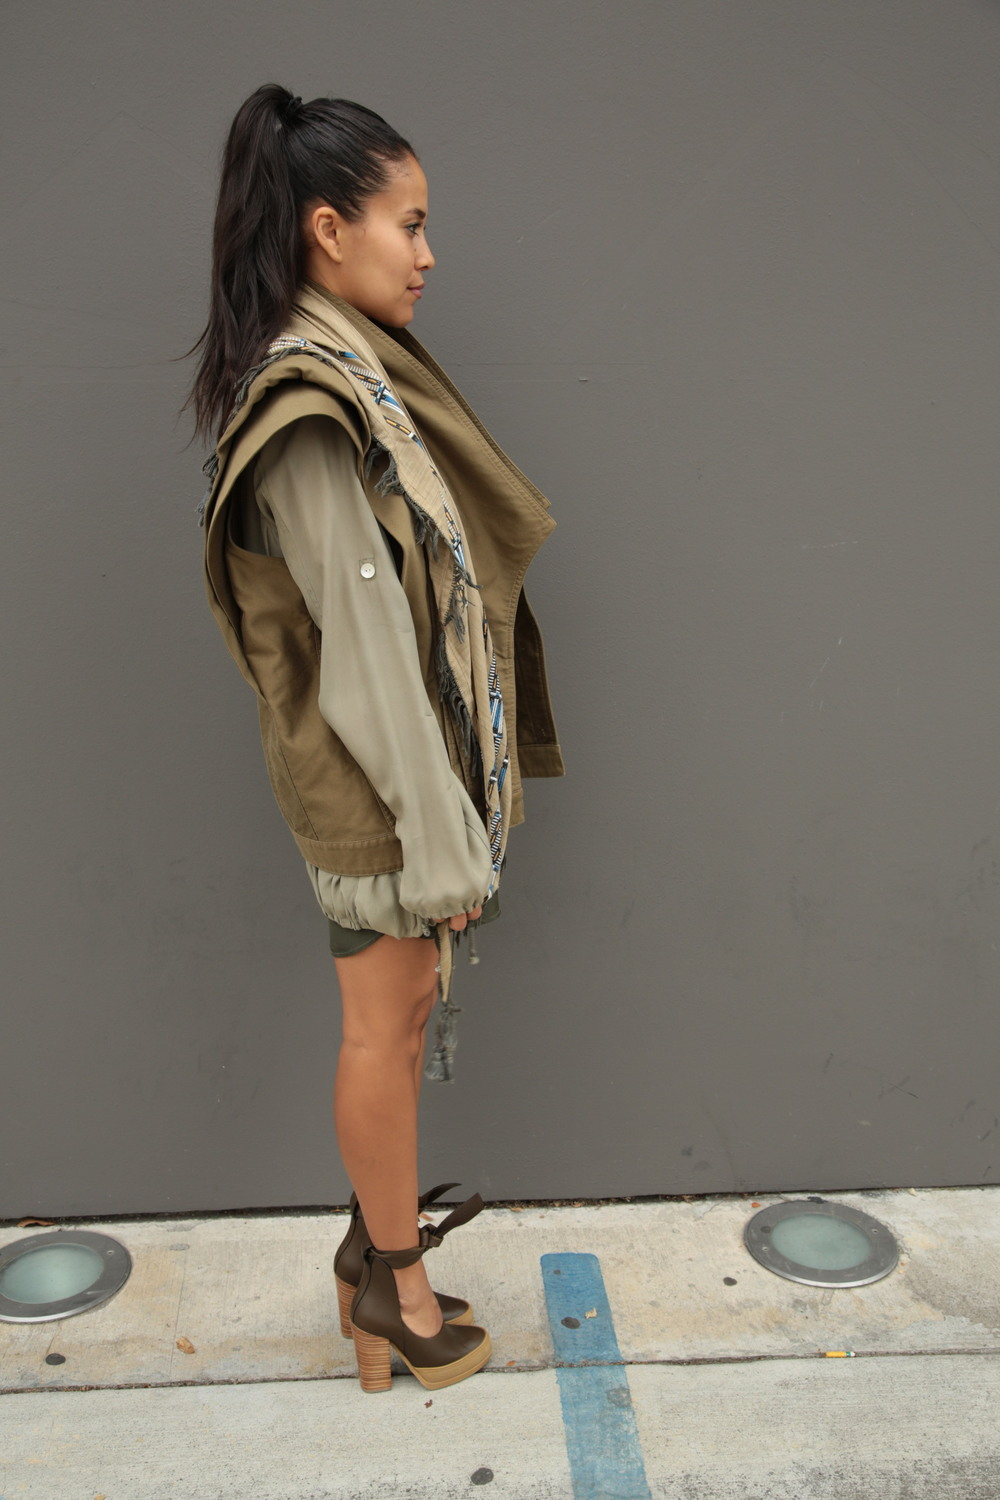 VANESSA-BELETIC-ISABEL-MARANT-GREEN-LAYERS-LOS-ANGELES.JPG